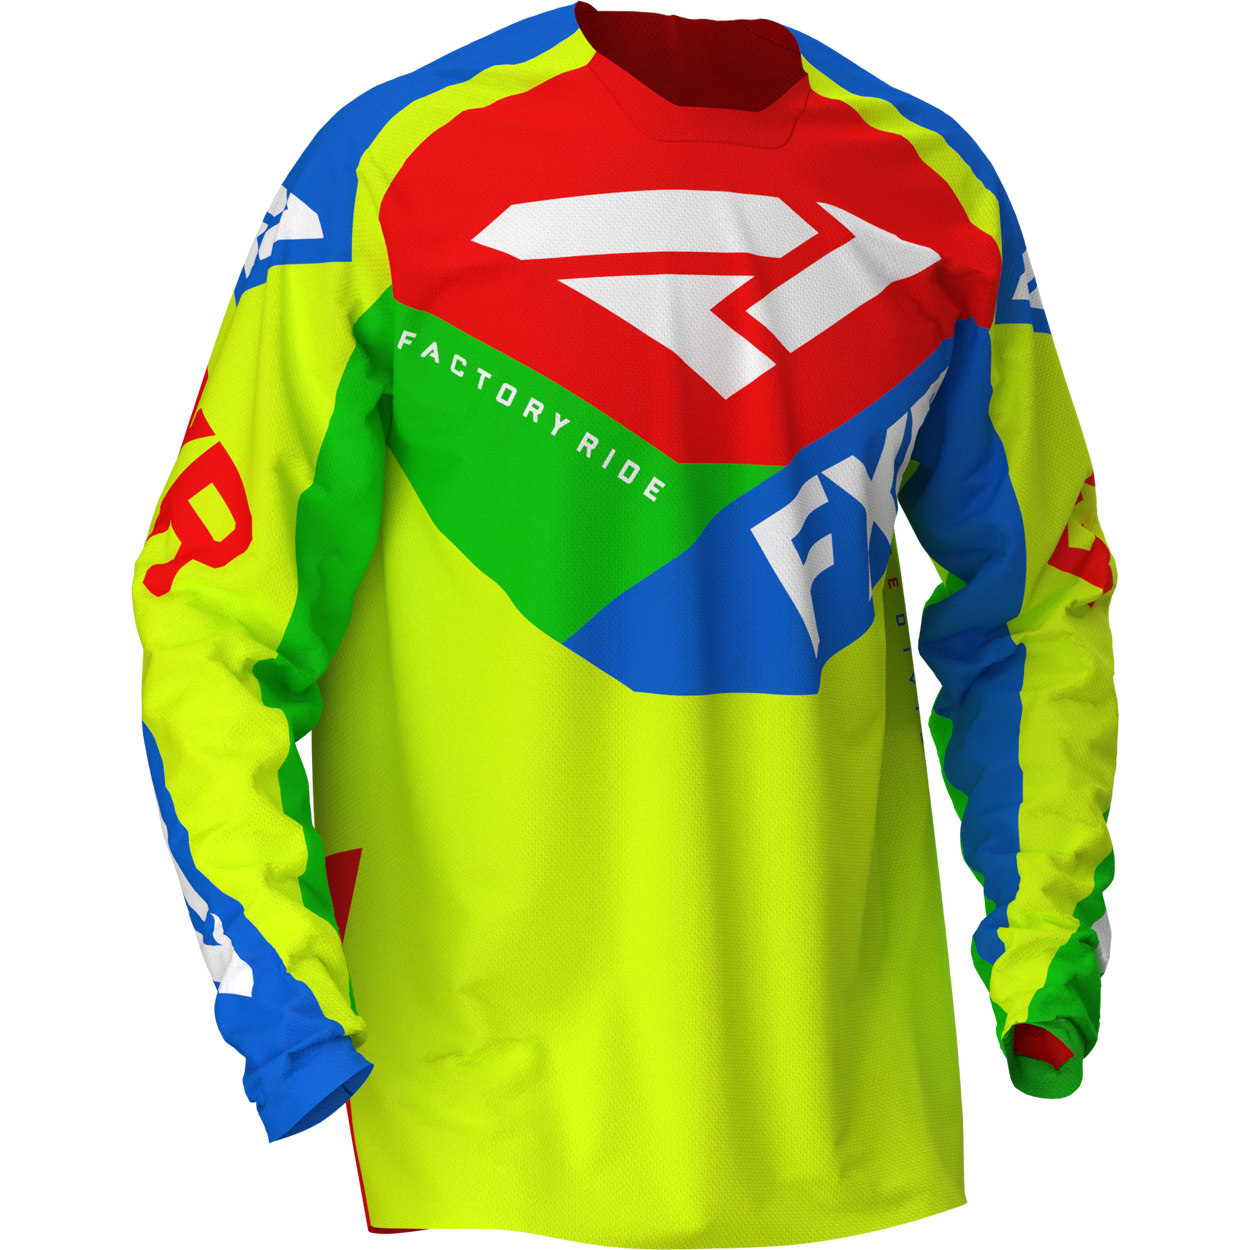 203307-6540 2020 FXR Racing Podium Air Jersey HiVis Yellow Blue Green Red Cross Trui Trikot Maillot